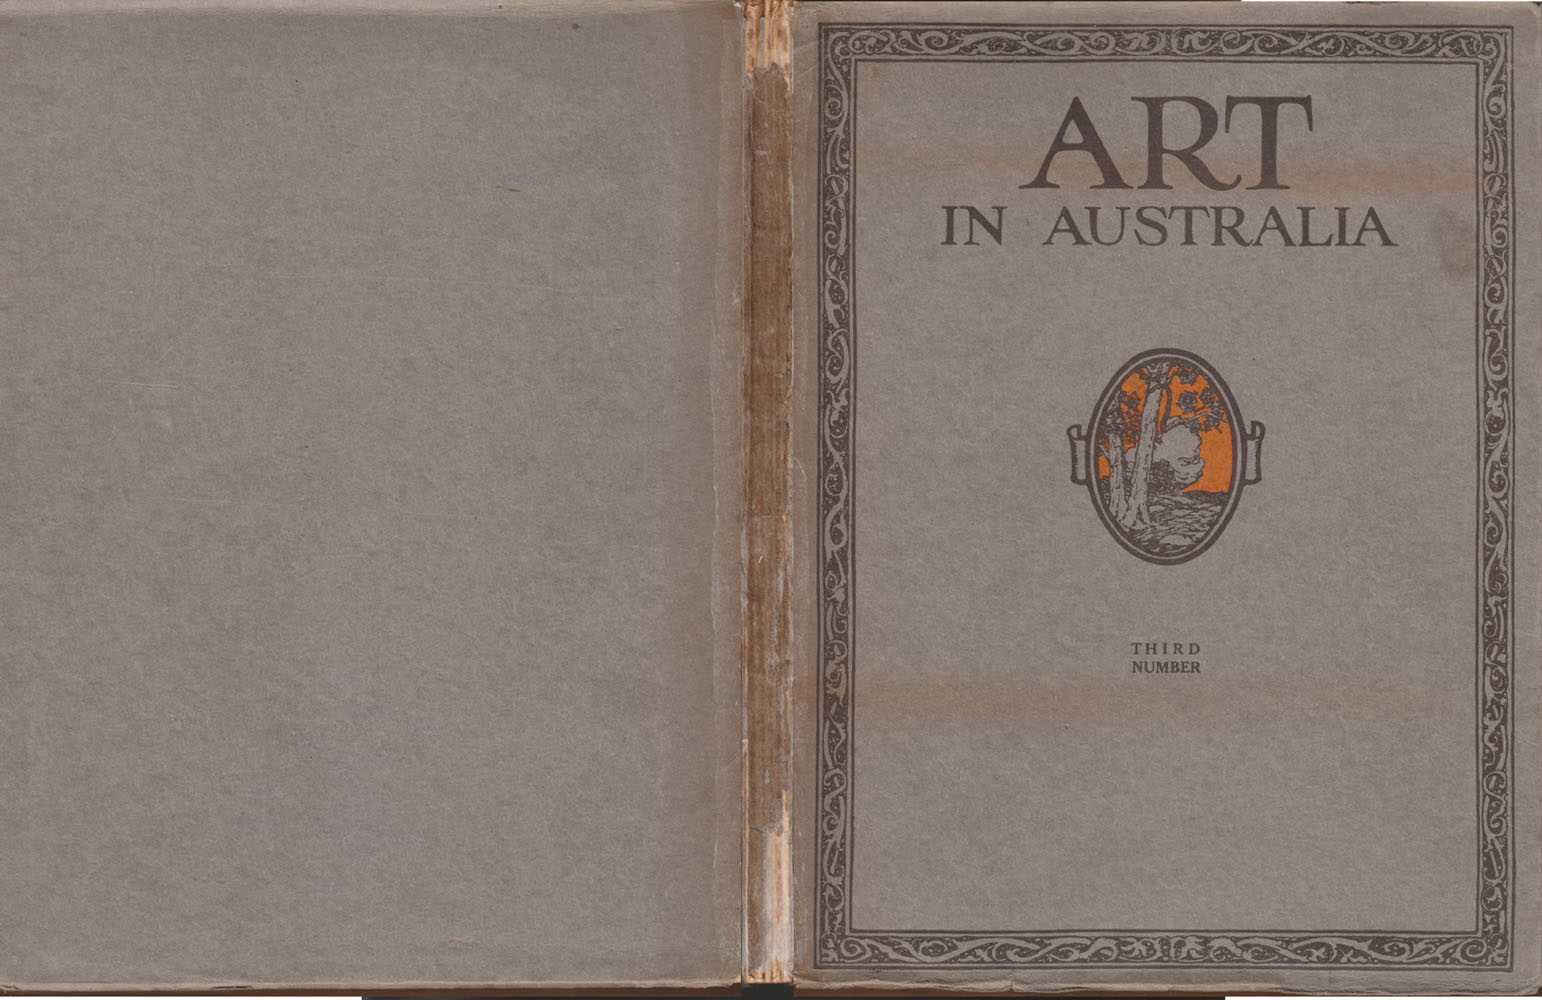 Art In Australia Third Number 1917, Smith, Stevens & Jones [Edited By], Sydney Ure & Bertram & C L